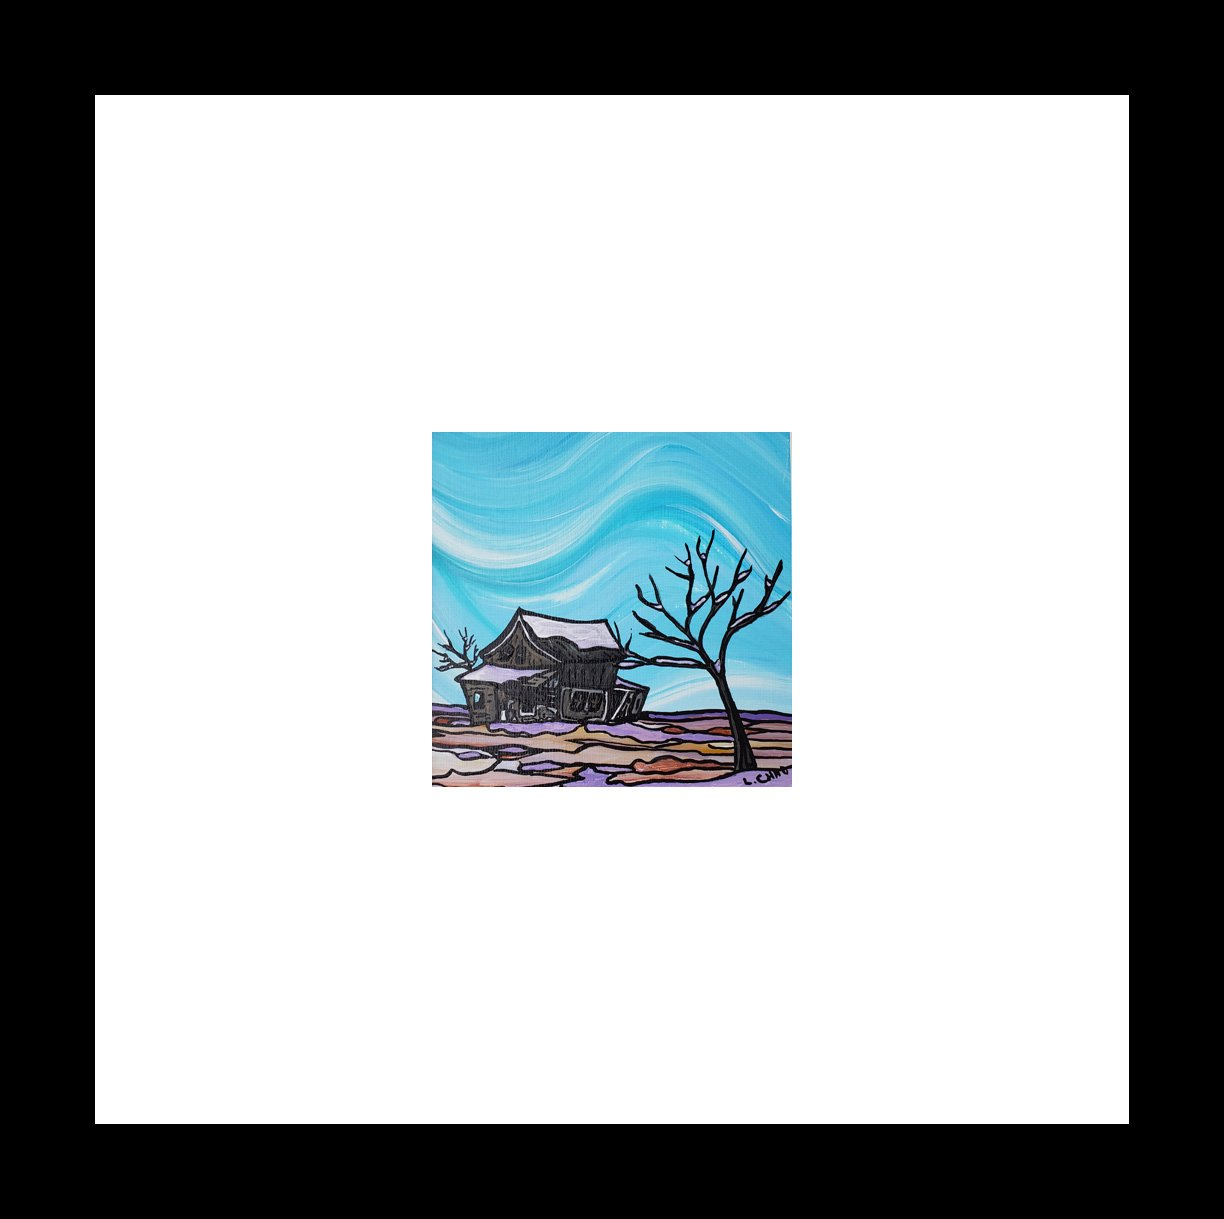 "2019-20 ""Prairie South Homestead"" Image: 5"" x 5"" Framed: 12"" x 12"" Acrylic on 246 lb paper $125.00"